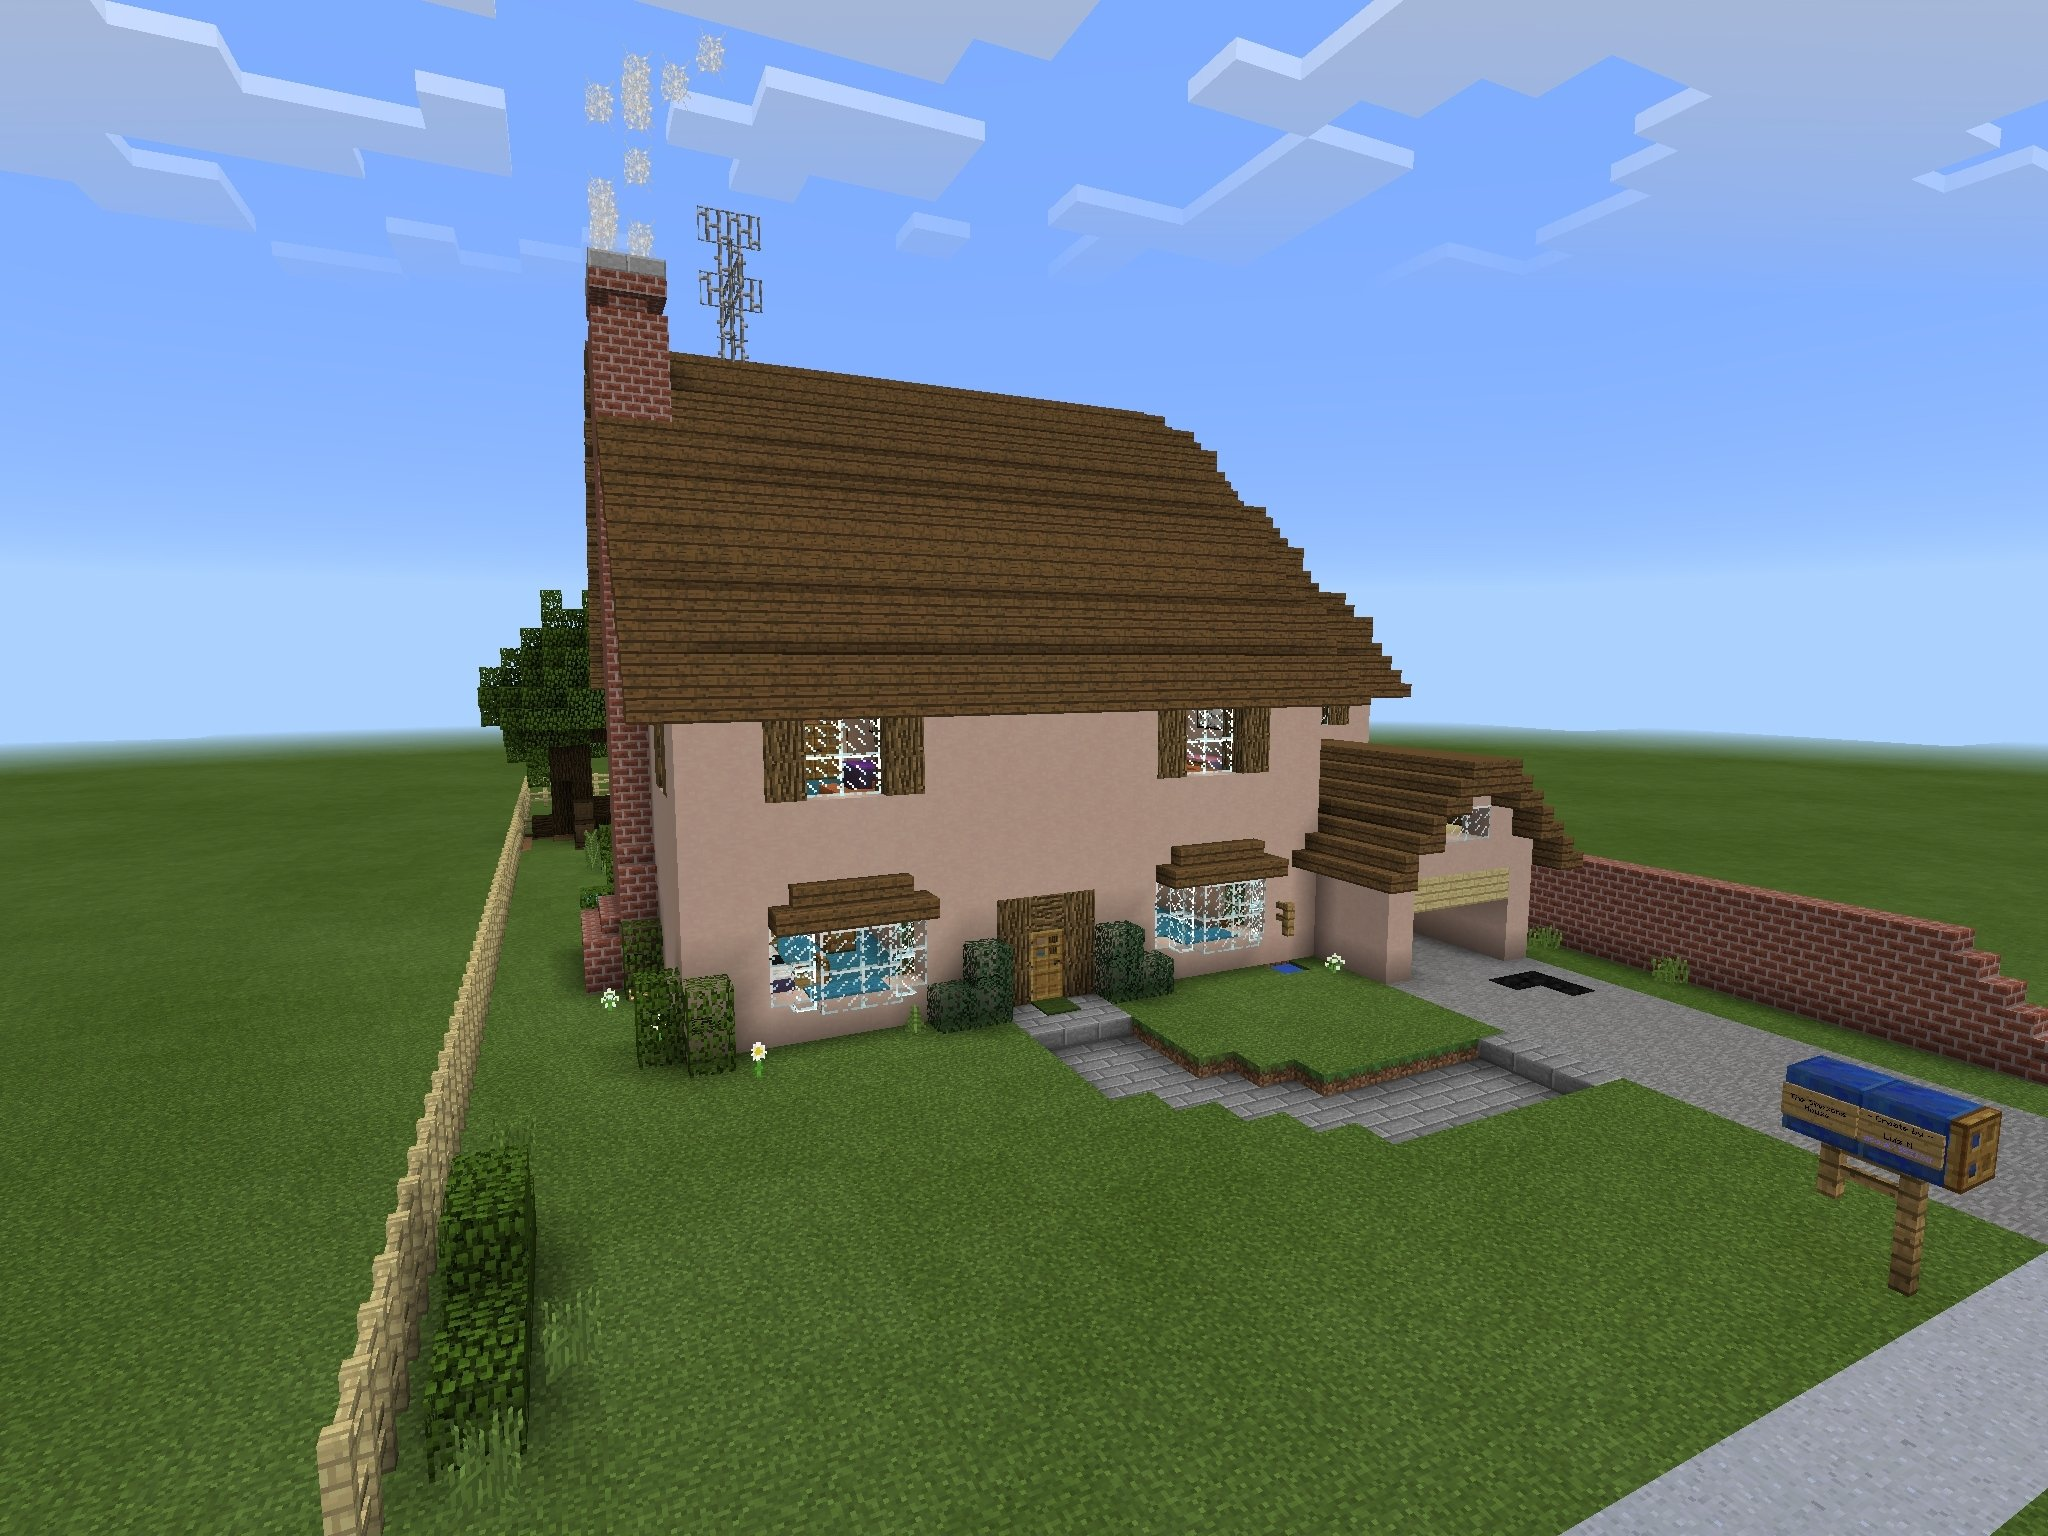 10 Most Popular House Ideas For Minecraft Pe the simpsons house minecraft pe minecraft mcpe minecraft 1 2020